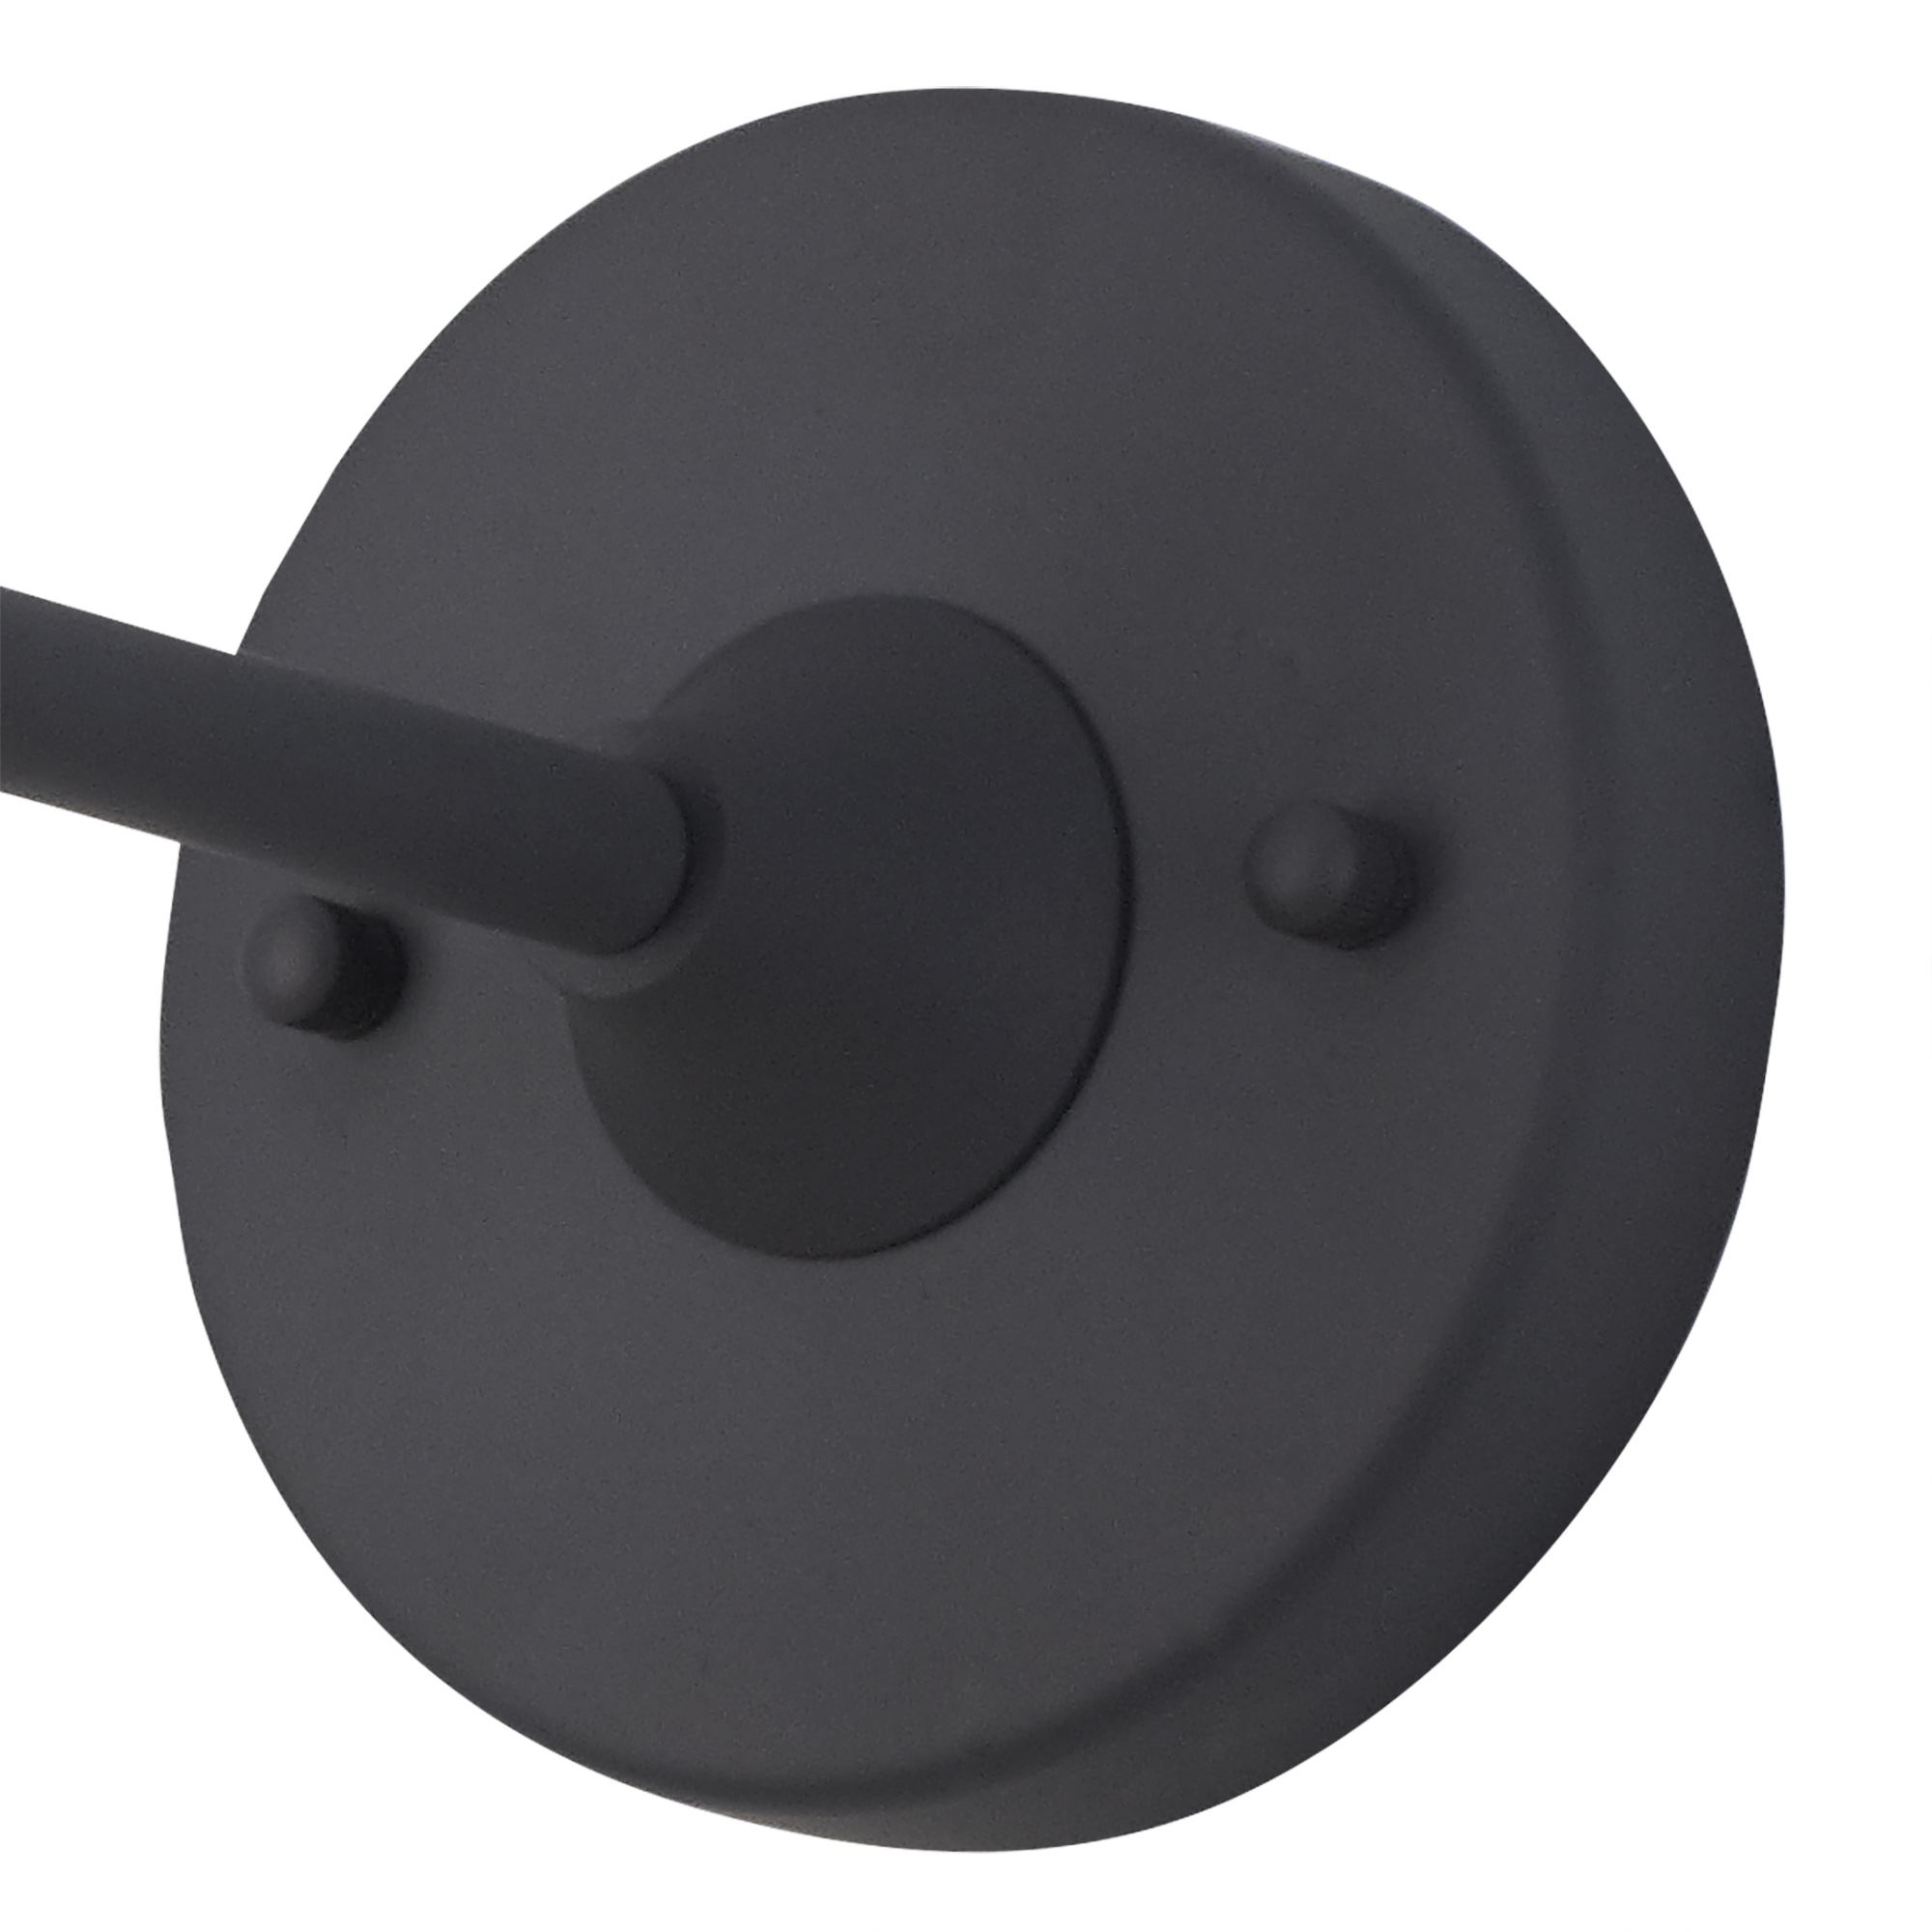 Wall Lamp, 1 Light E27, IP65, Anthracite/Matt White, 2yrs Warranty